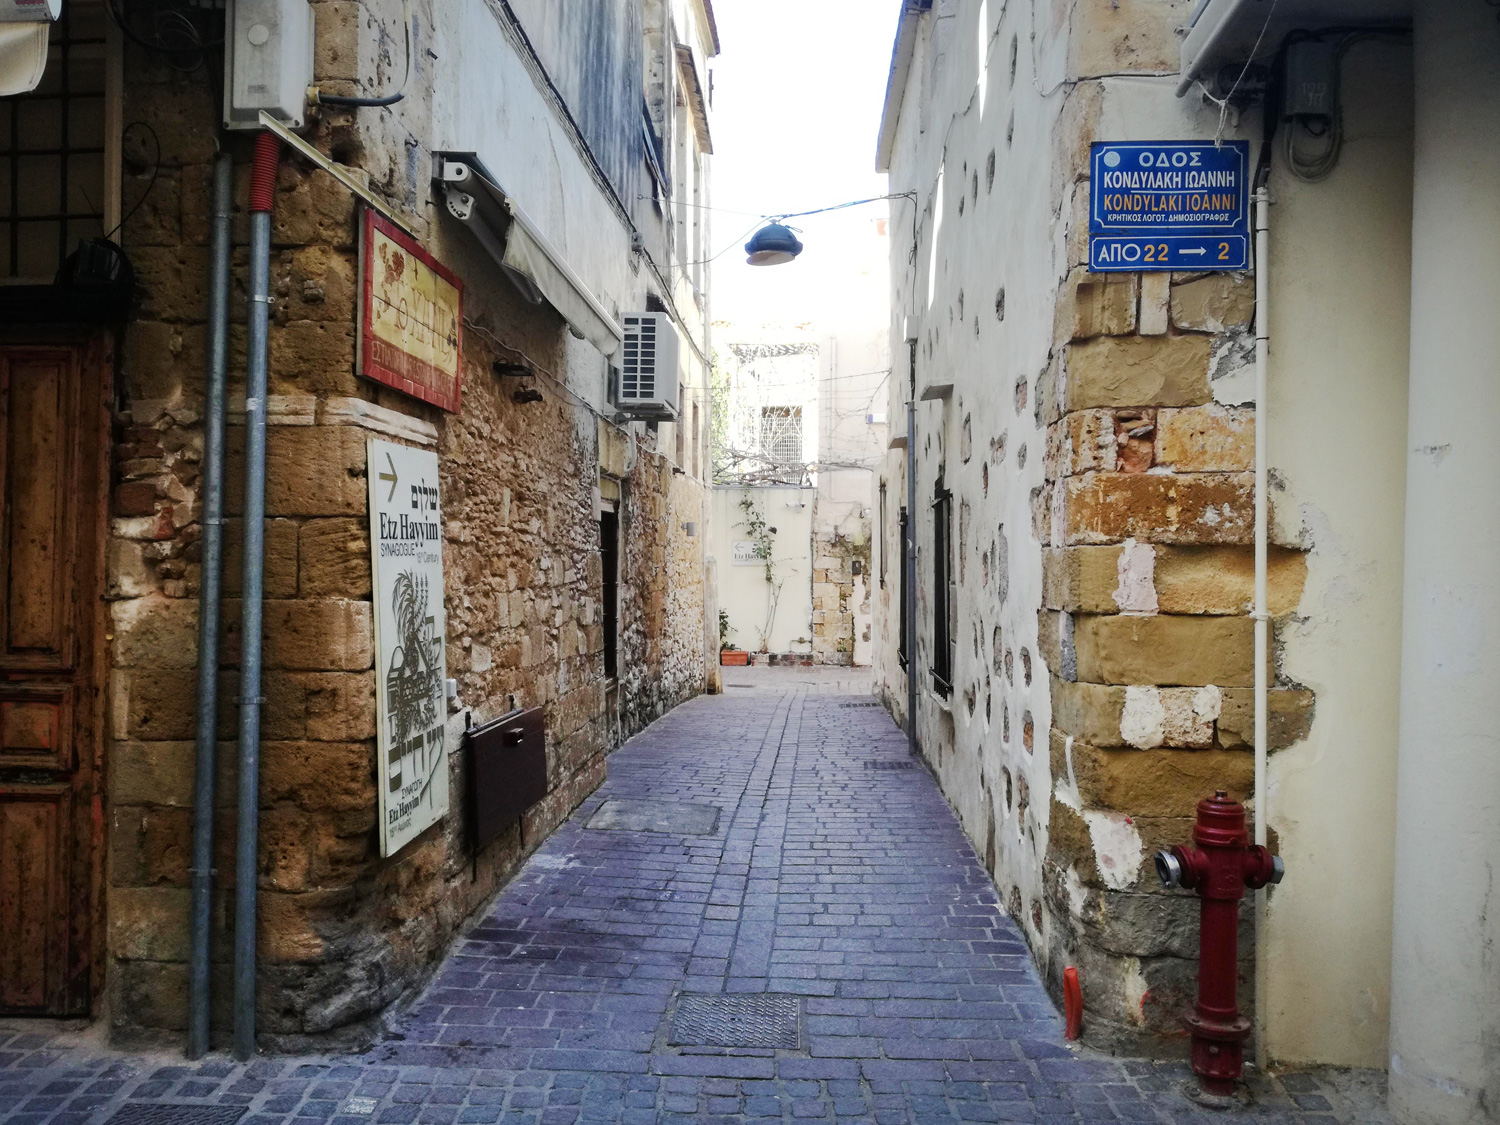 Alley leading to the synagogue